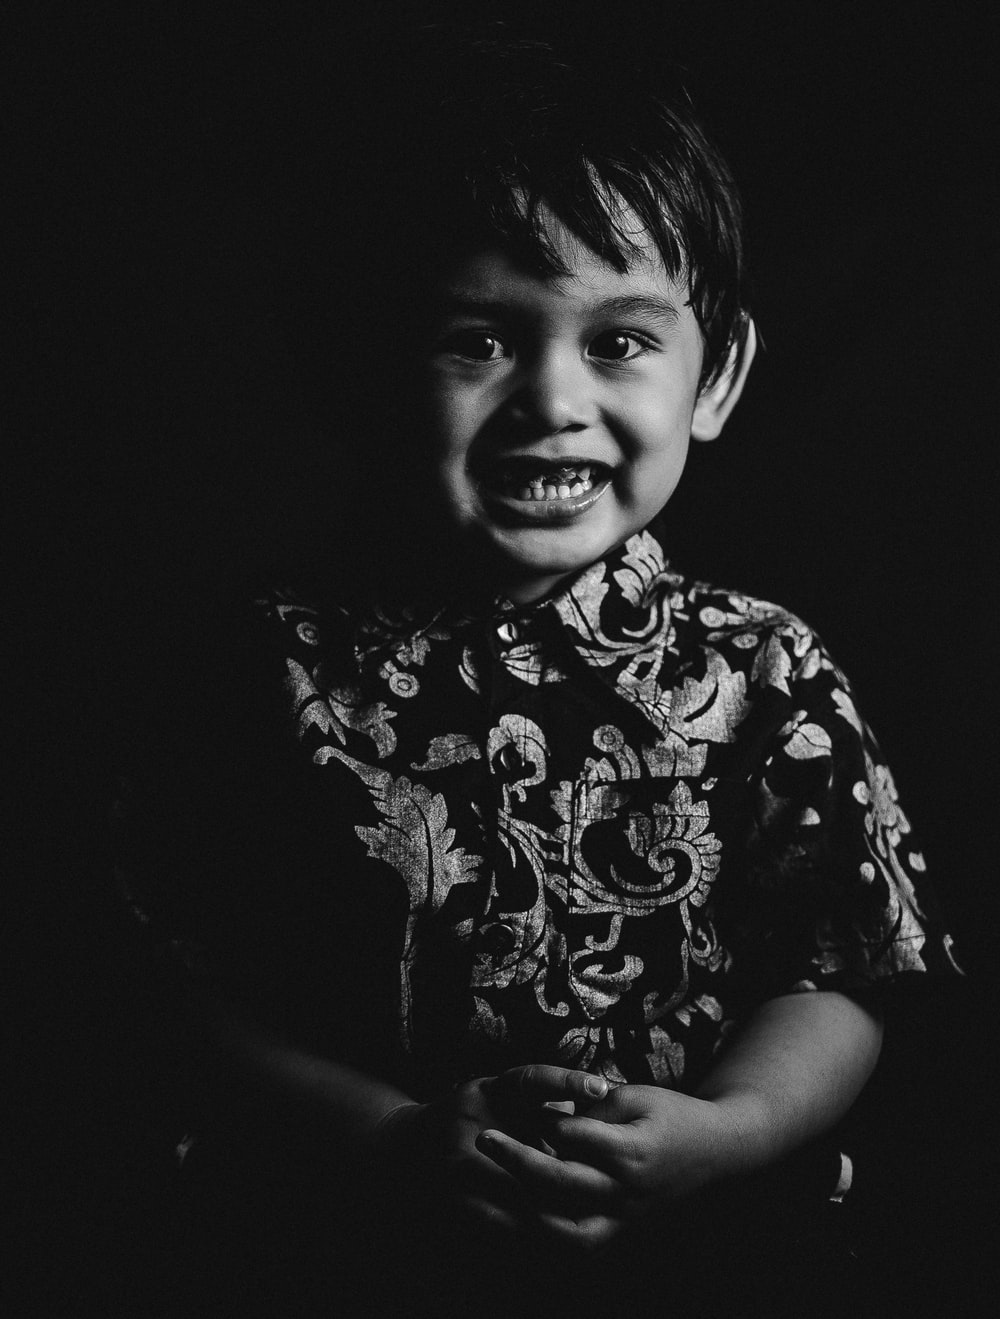 grayscale photo of smiling boy